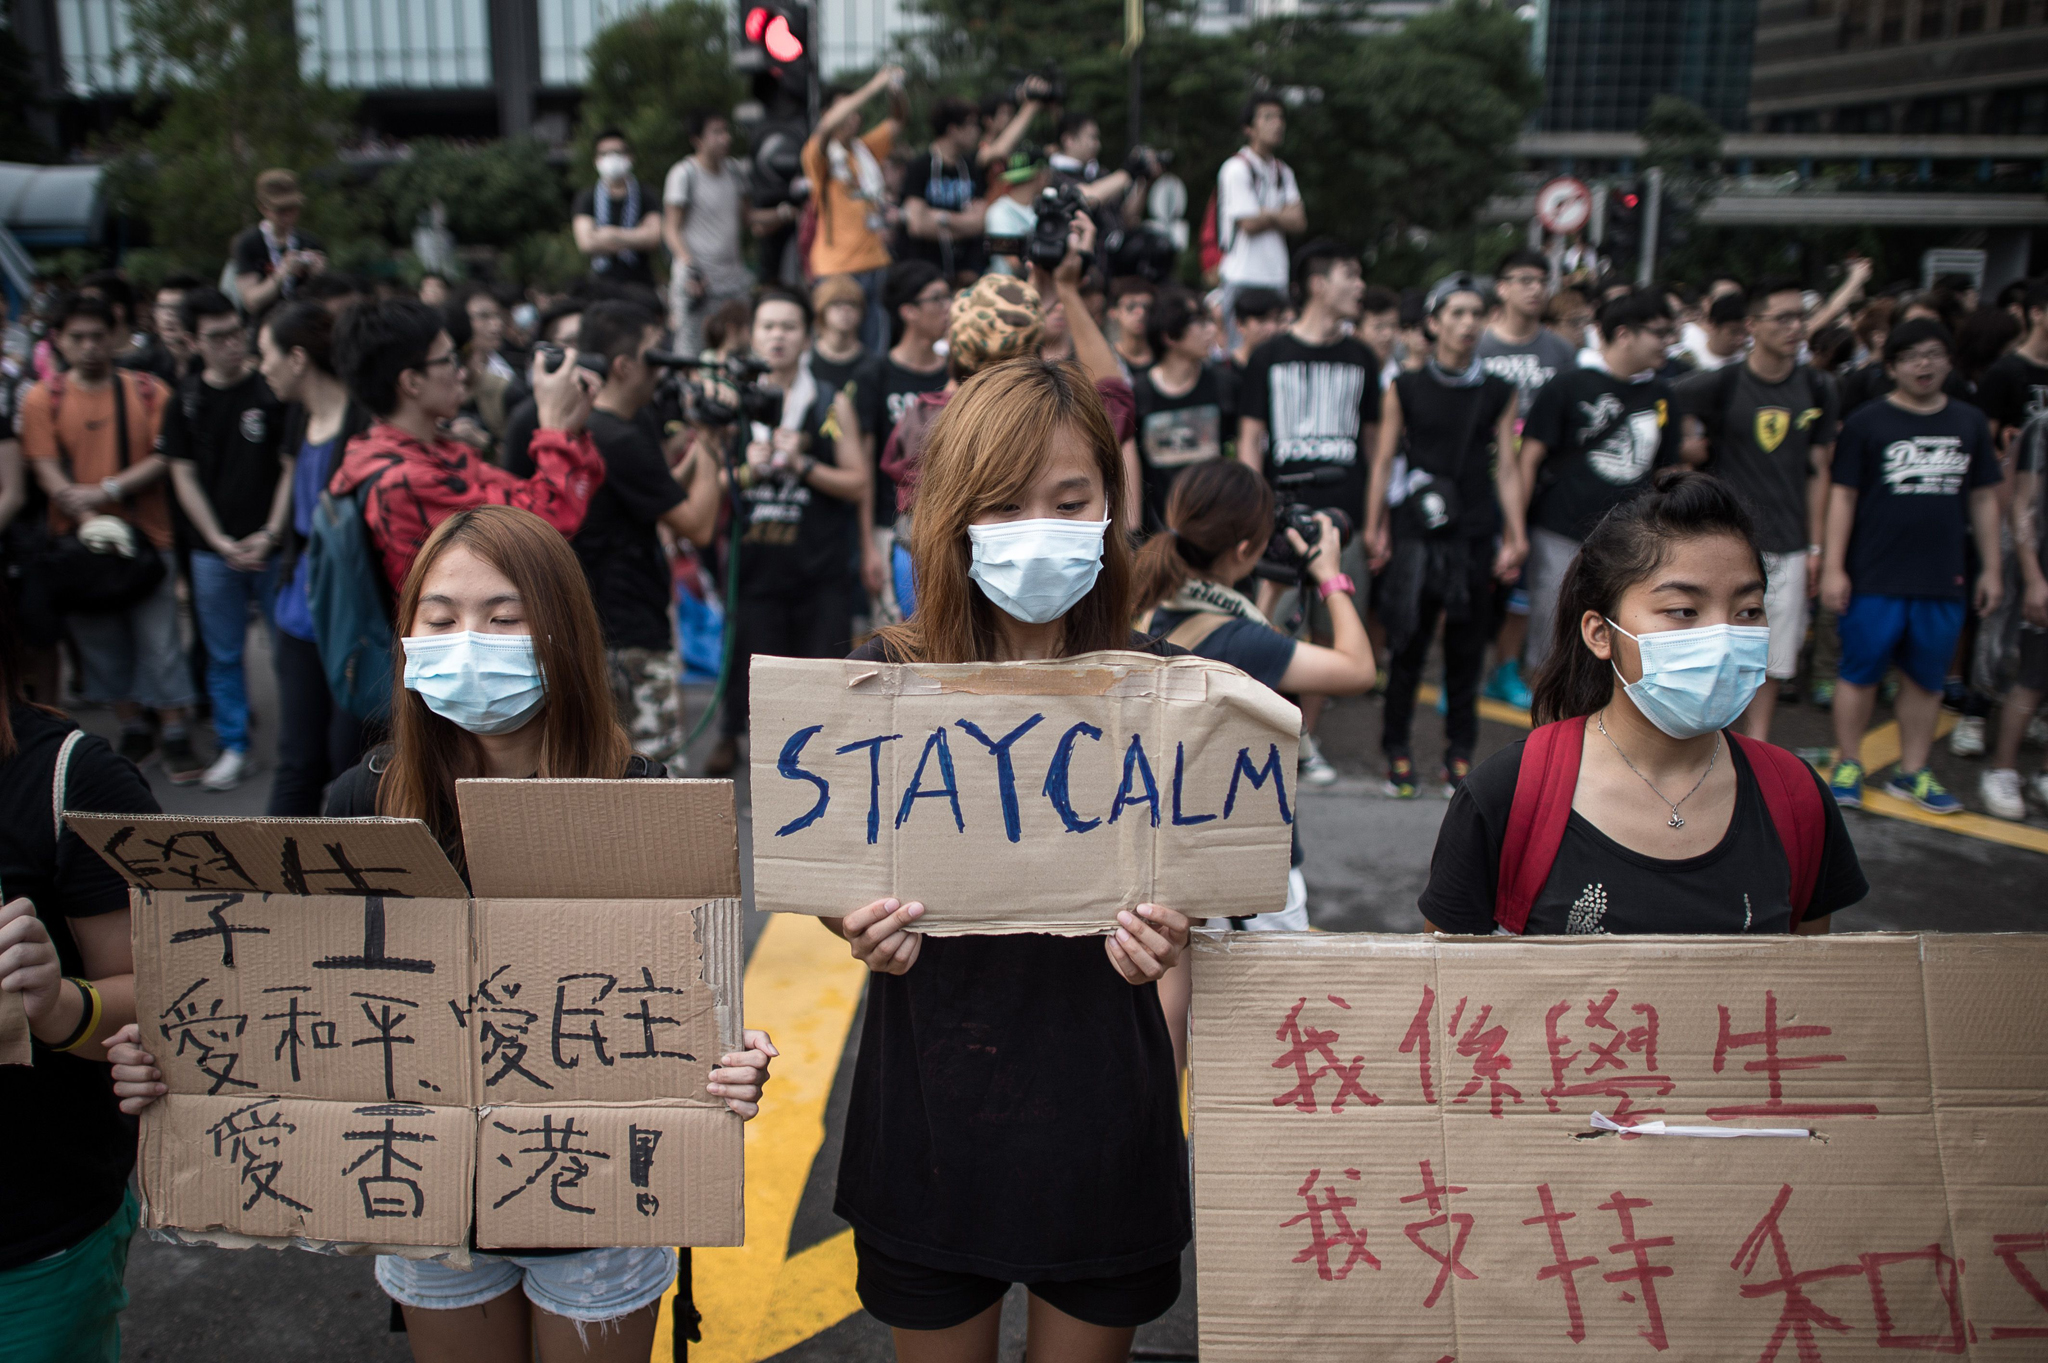 Pro-democracy demonstrators display placards as they gather near a ceremony marking China's 65th National Day in Hong Kong on October 1, 2014. Hong Kong protesters who braved thunderstorms to stage their third night of pro-democracy rallies began massing on October 1 at the city's Golden Bauhinia Square as China's National Day holiday lent their campaign for free elections fresh momentum.